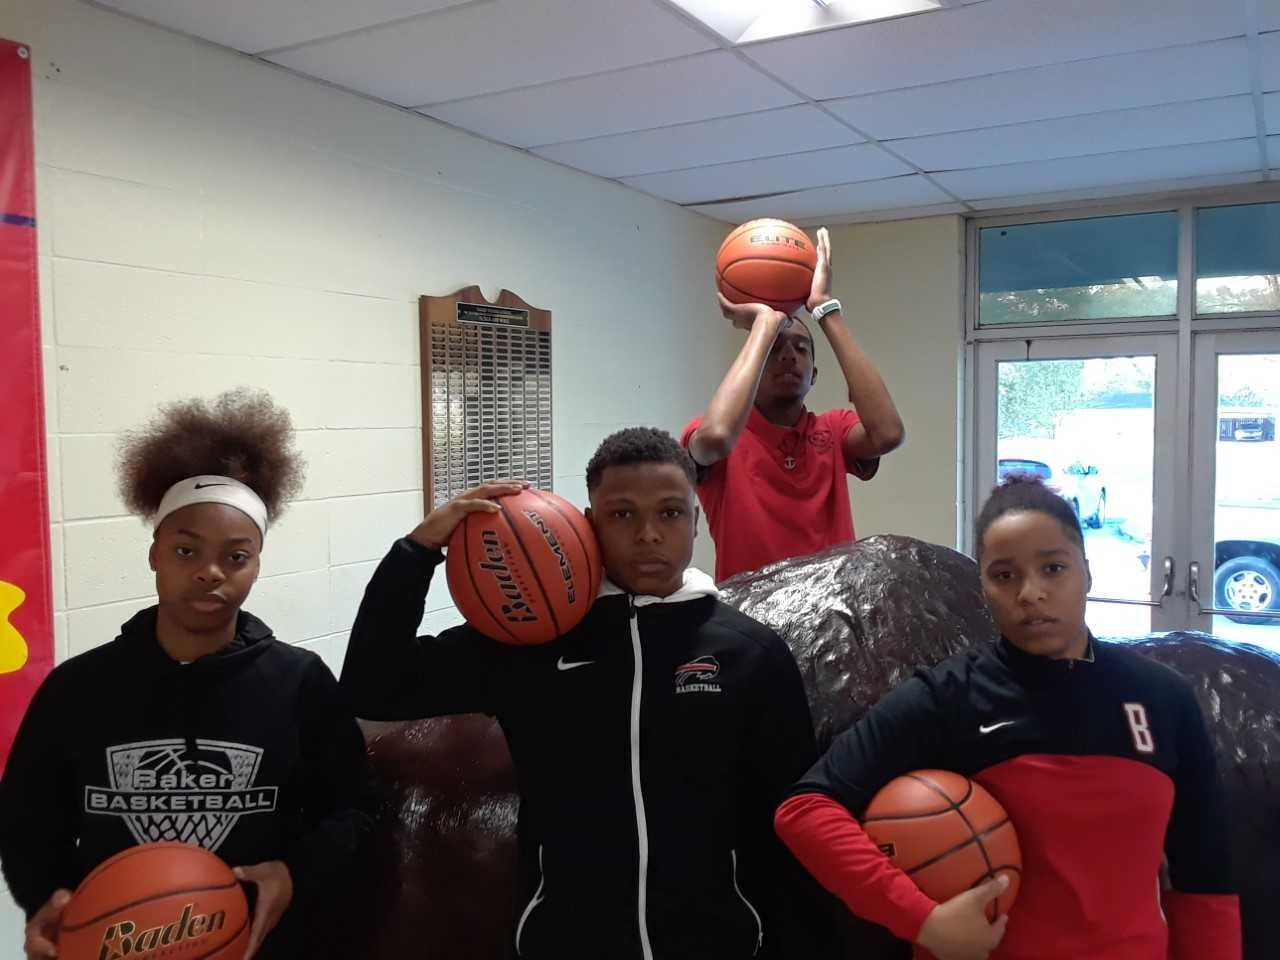 A photo of the 4 basketball athletes from Baker High who will participate in the Louisiana NAACP EBR All Star Game